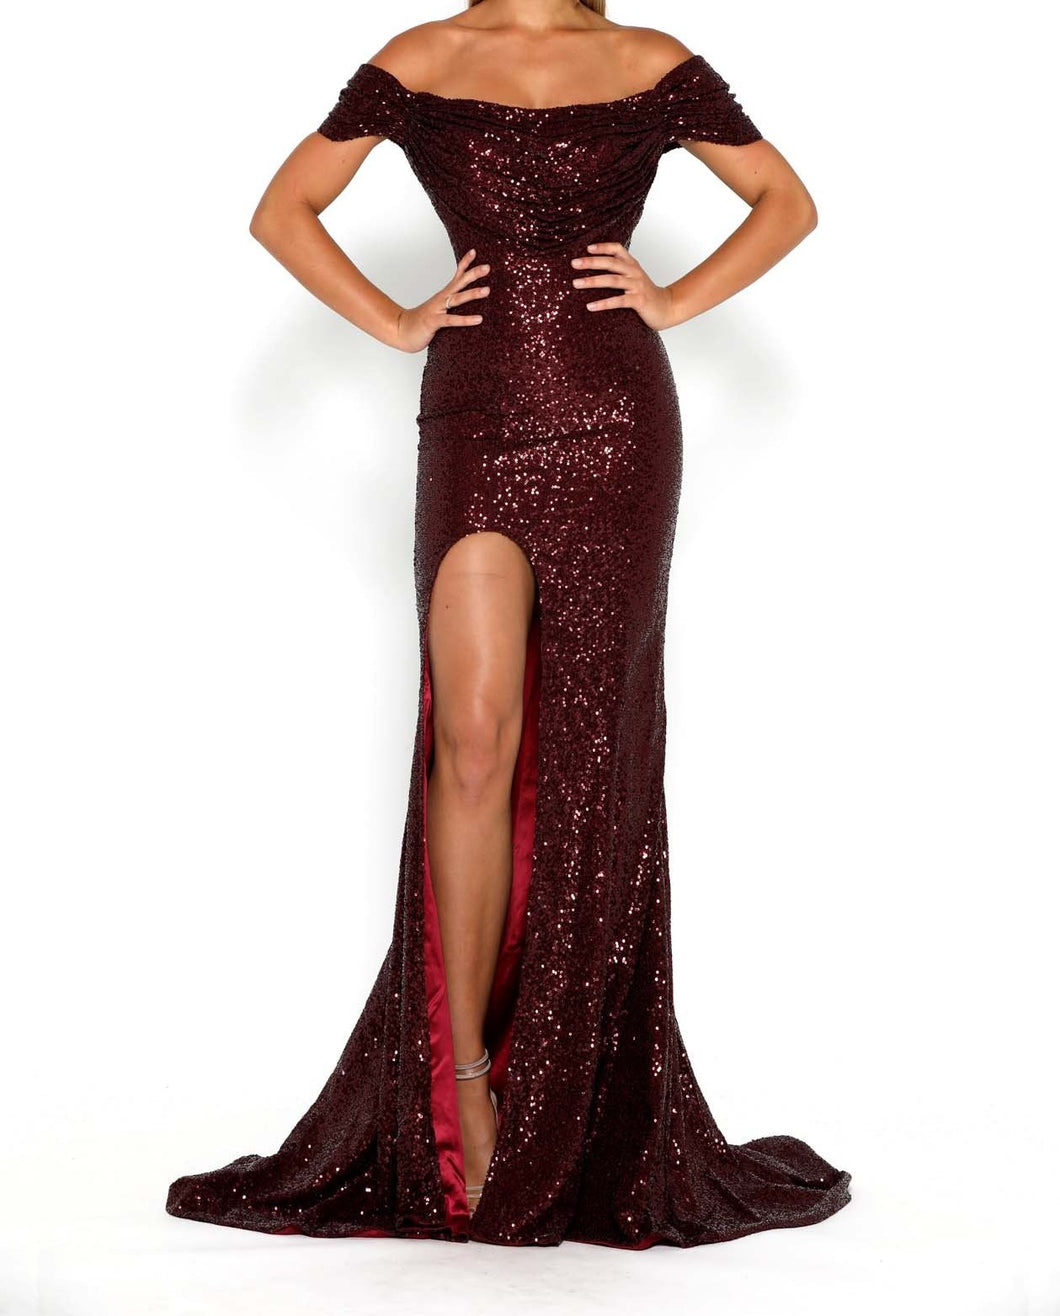 Portia & Scarlett Diamond Gown 69 Burgundy